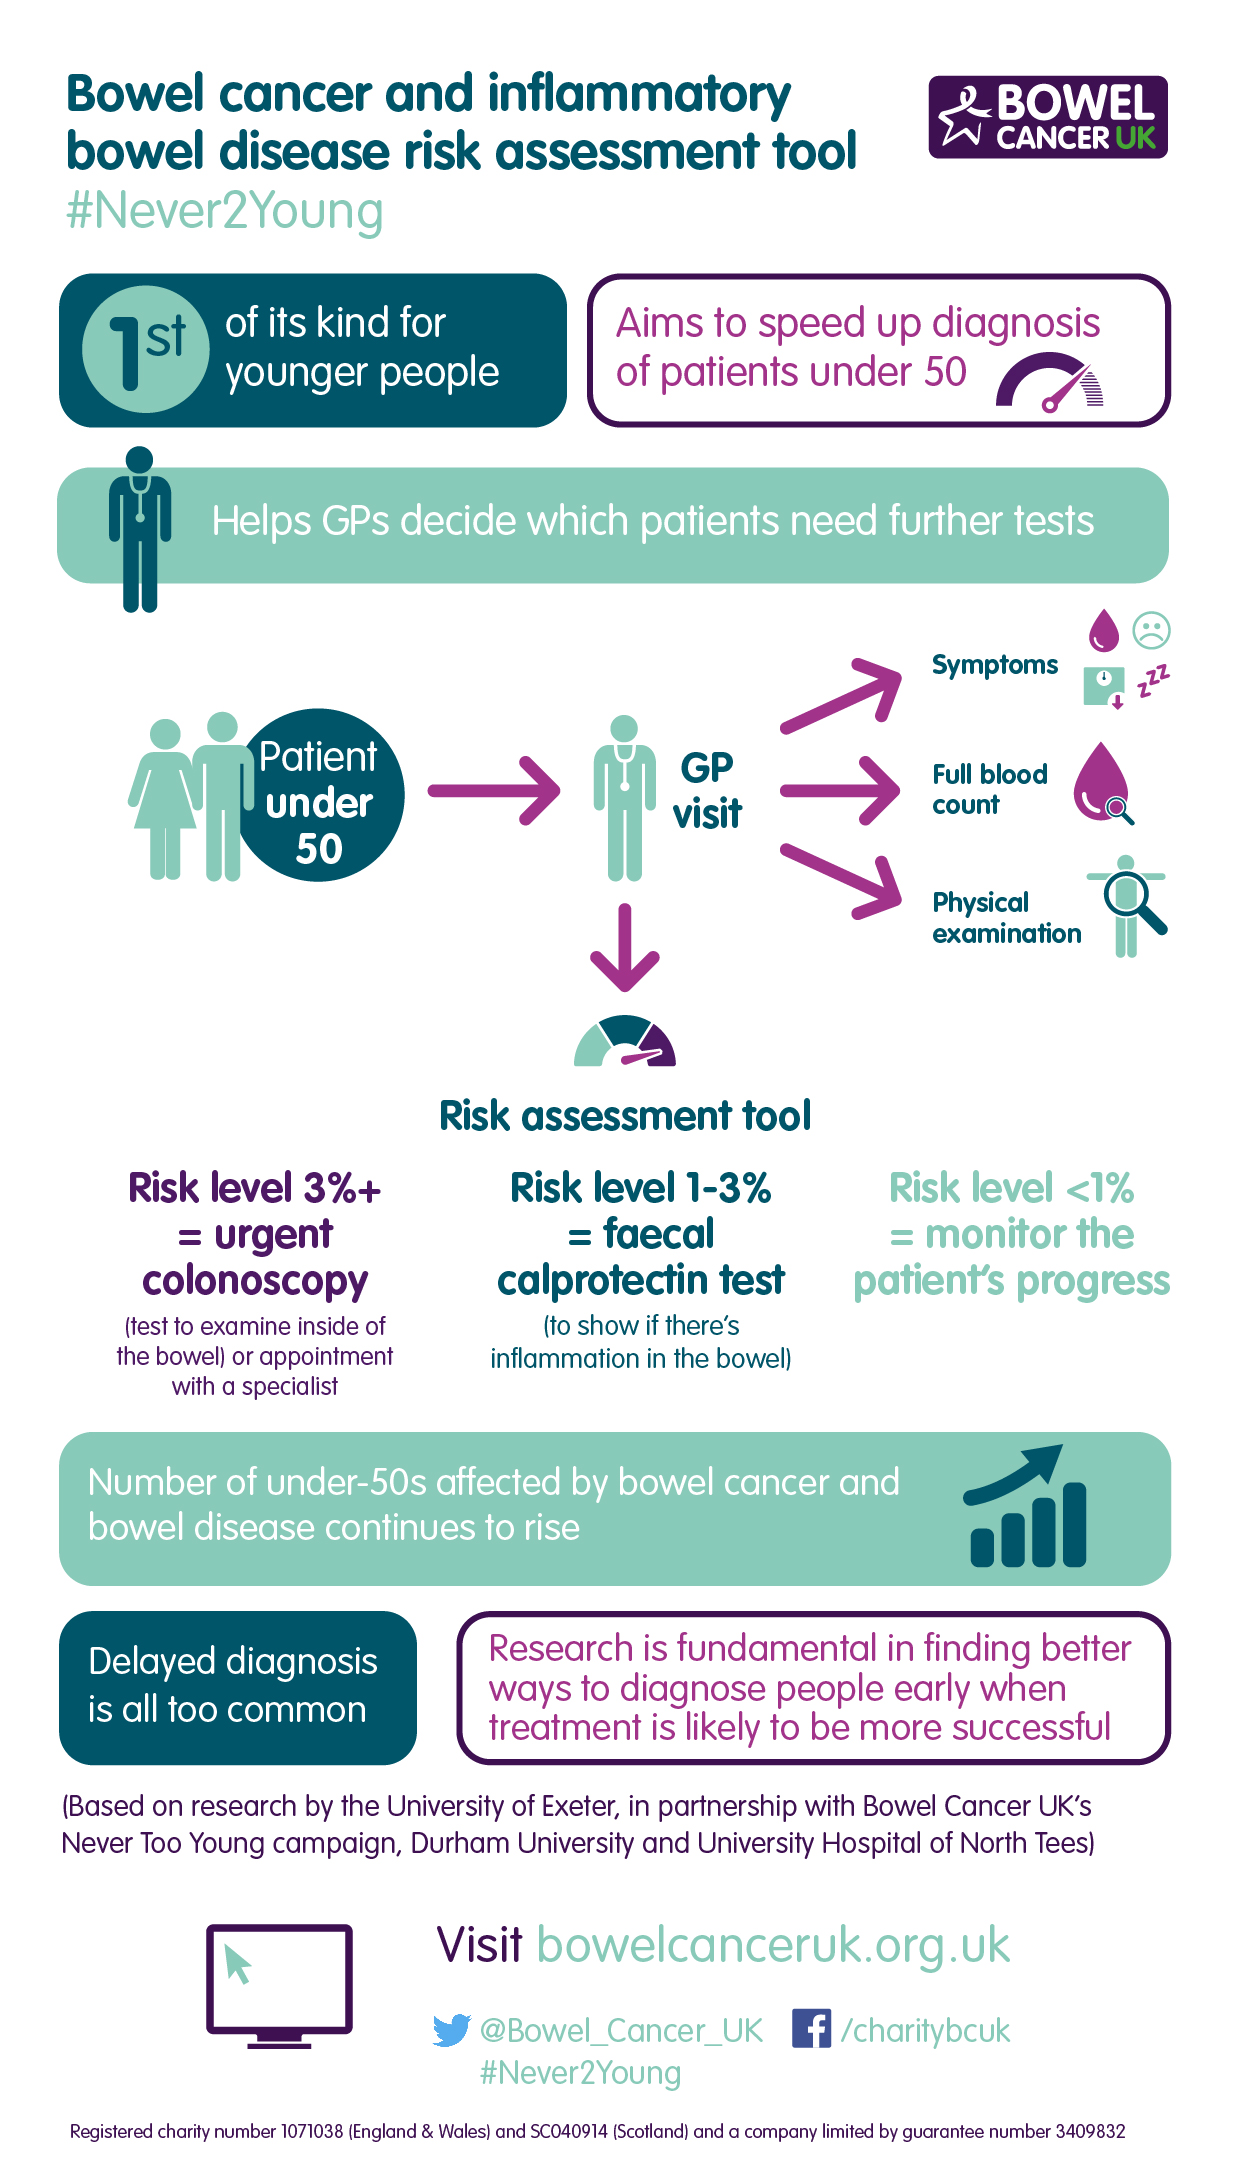 New Risk Tool To Help Gps Decide If Patients Under 50 Have Serious Bowel Condition Bowel Cancer Uk